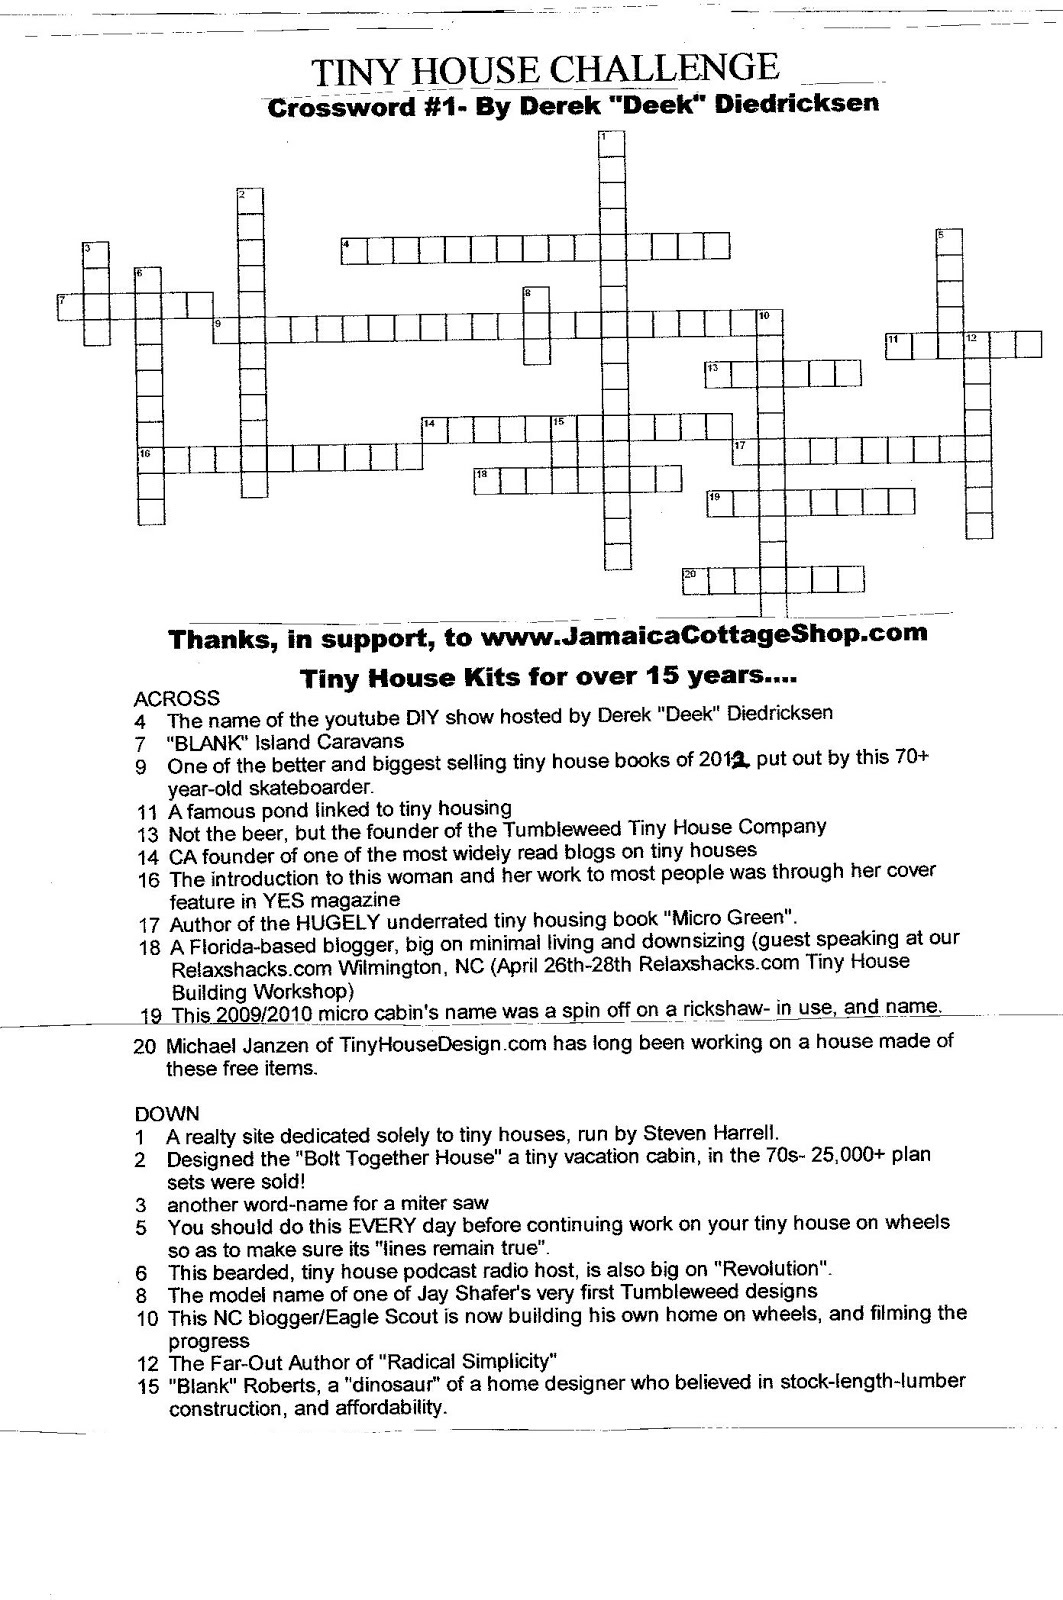 Very Small Crossword Challenge